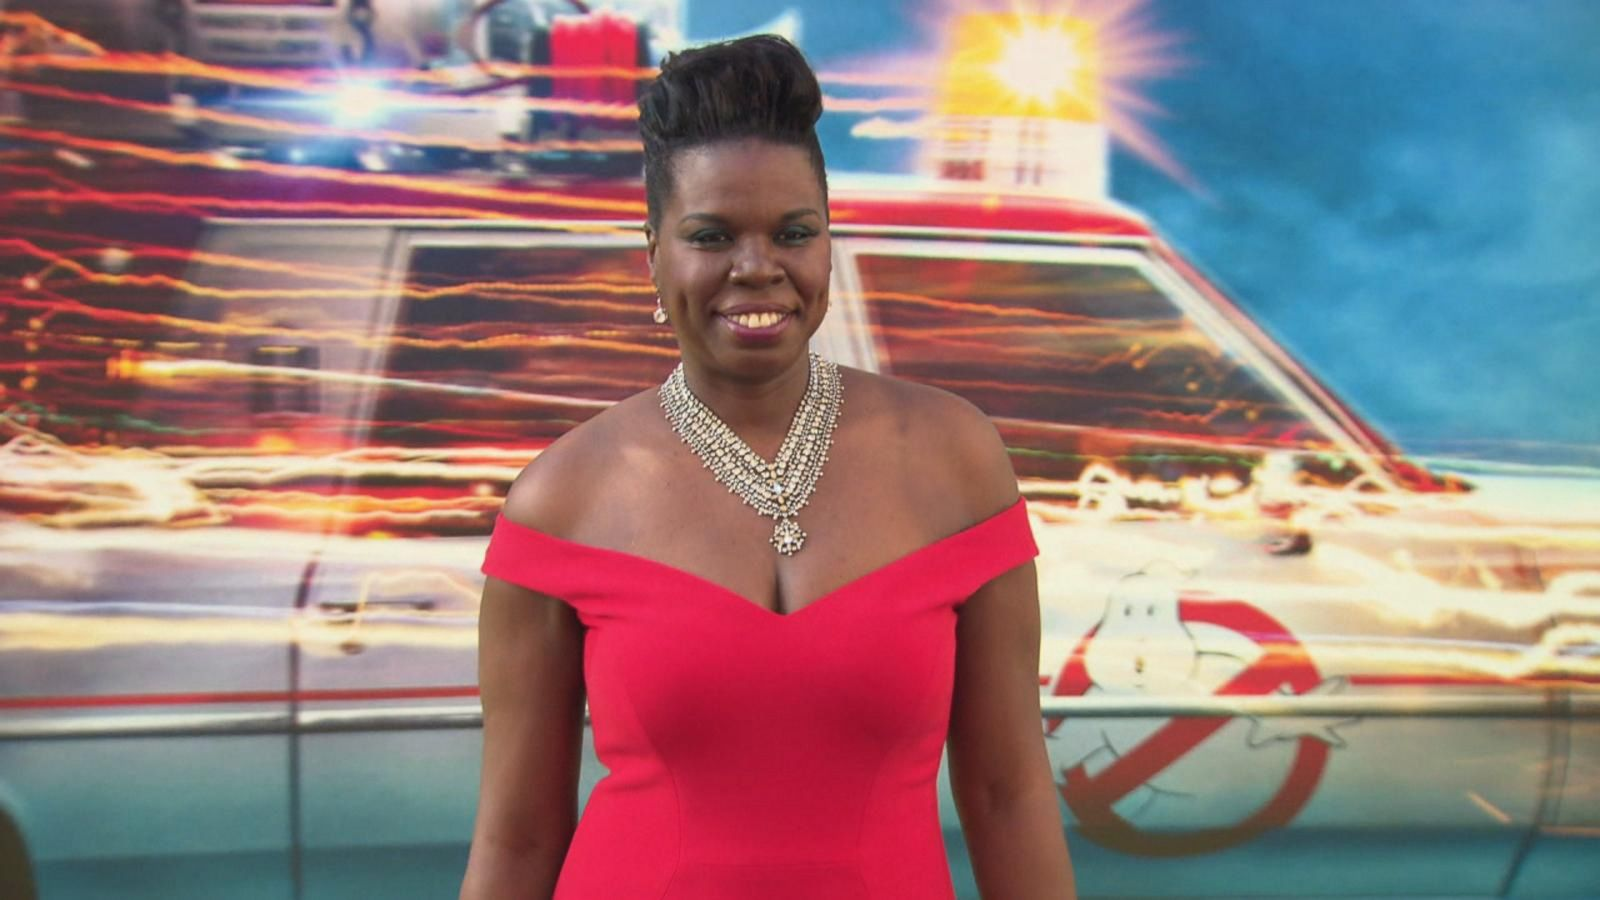 VIDEO: Hollywood Rallies Behind 'SNL' Star Leslie Jones After Her Personal Website Is Hacked